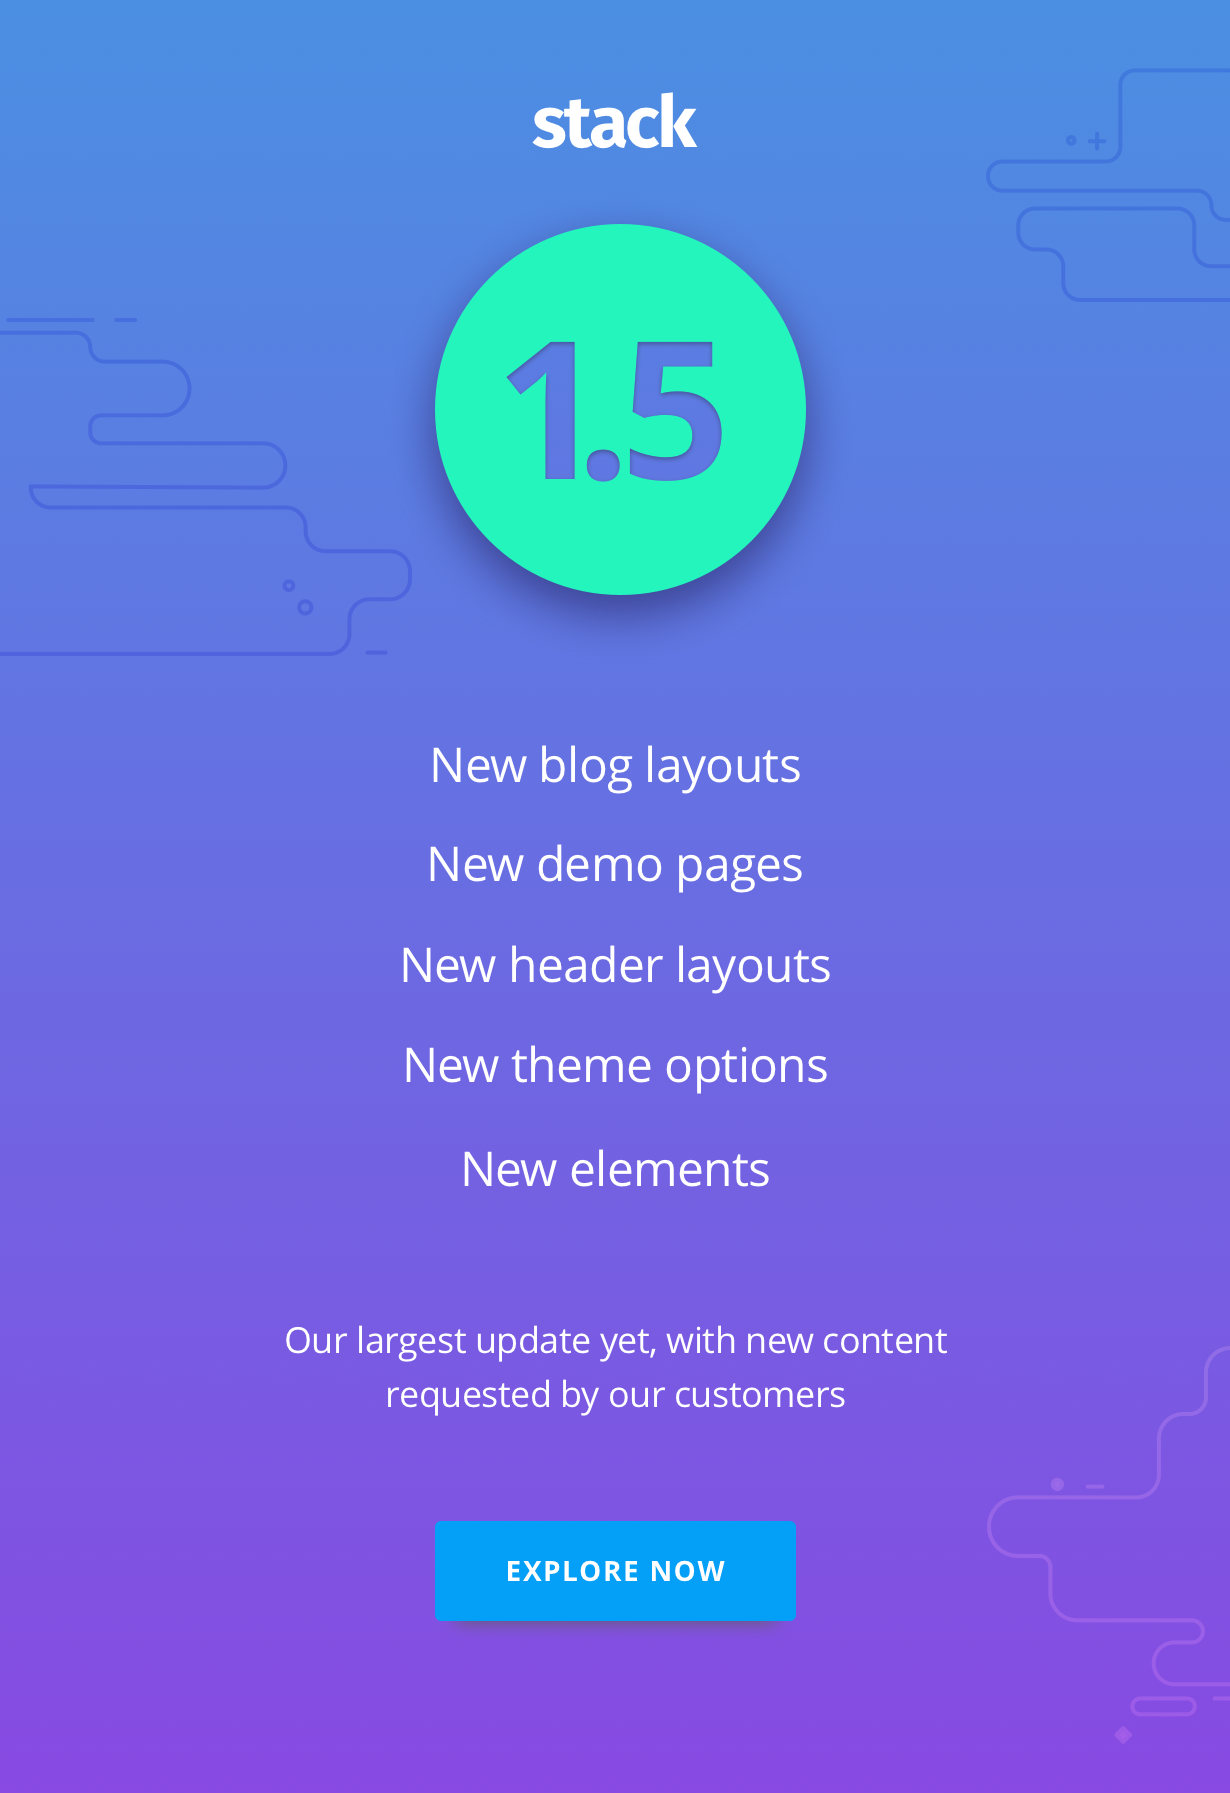 1 5 promo - Stack - Multi-Purpose WordPress Theme with Variant Page Builder & Visual Composer